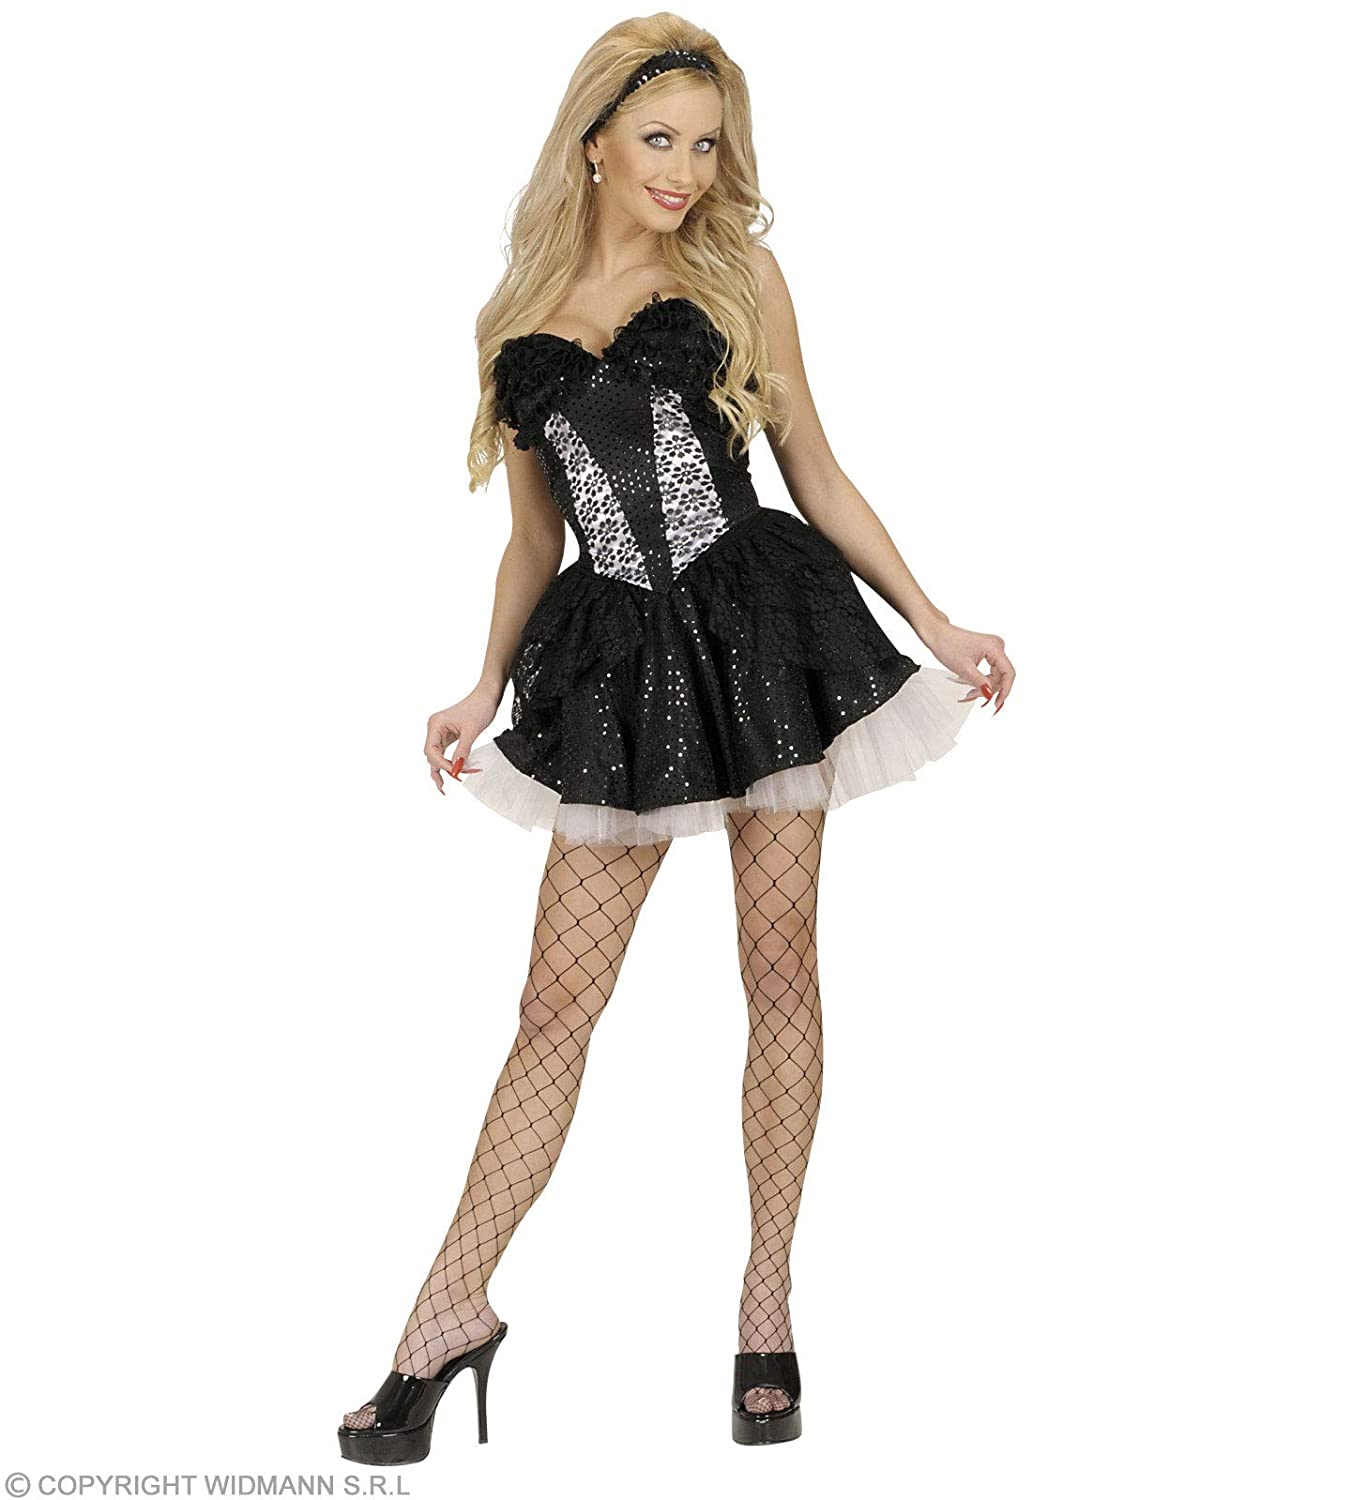 d415787b77c Amazon.com  XL Size Black Sequin   Lace Corsets Costume Extra Large For 80s  Music Madonna  Home Improvement